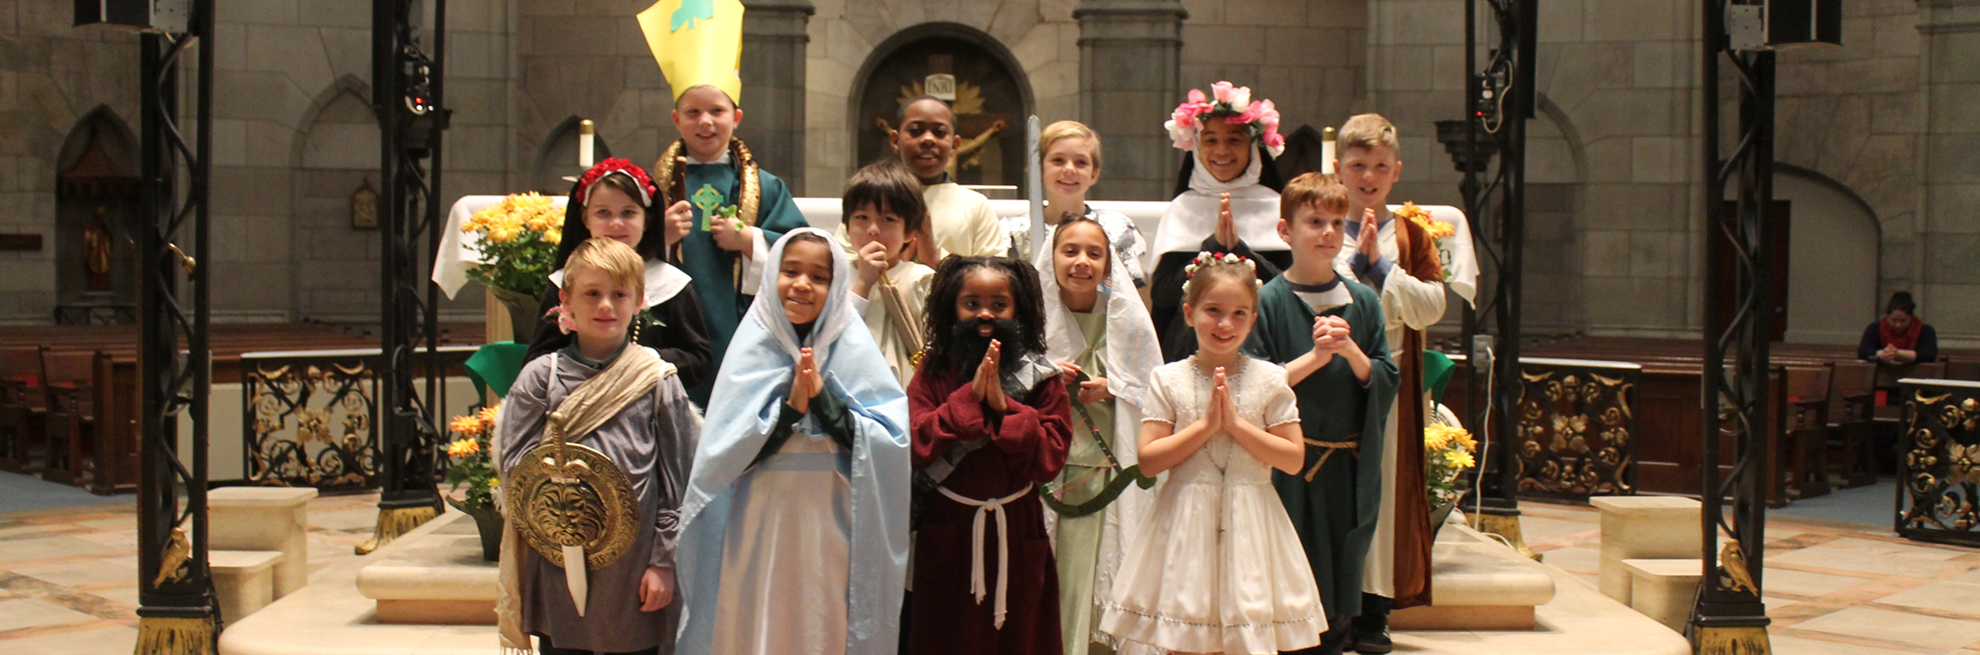 Kids dressed for All Saints Mass